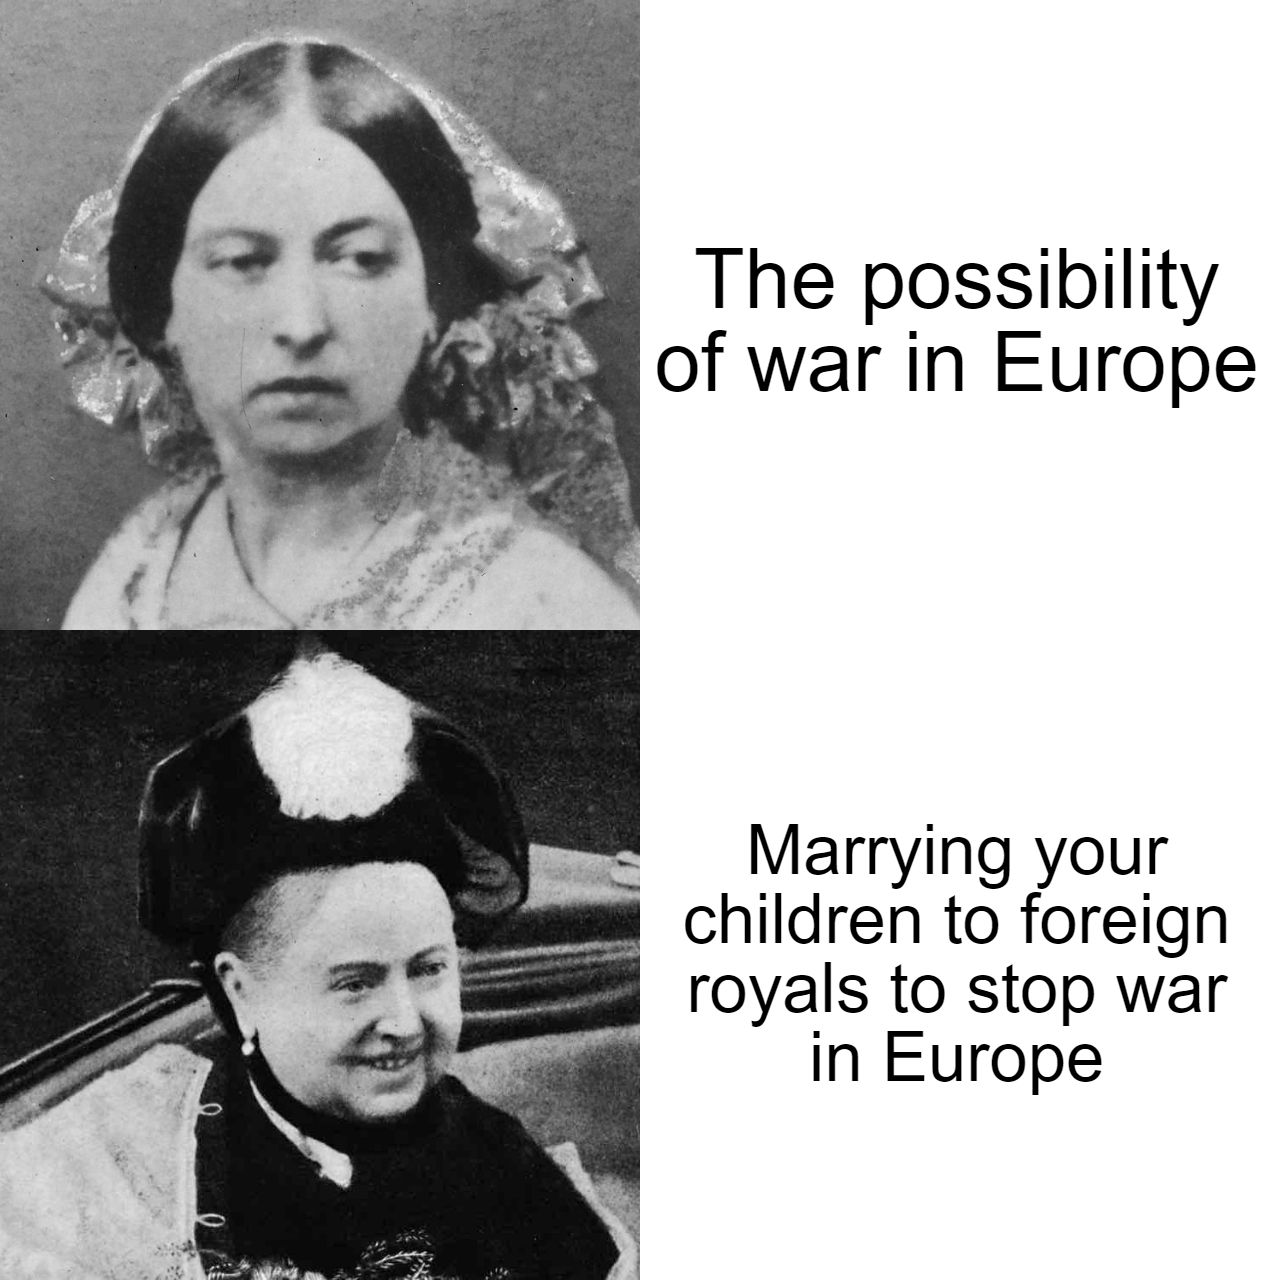 She was the grandmother of the King of the UK, Kaiser and grandmother-in-law of the Tsar